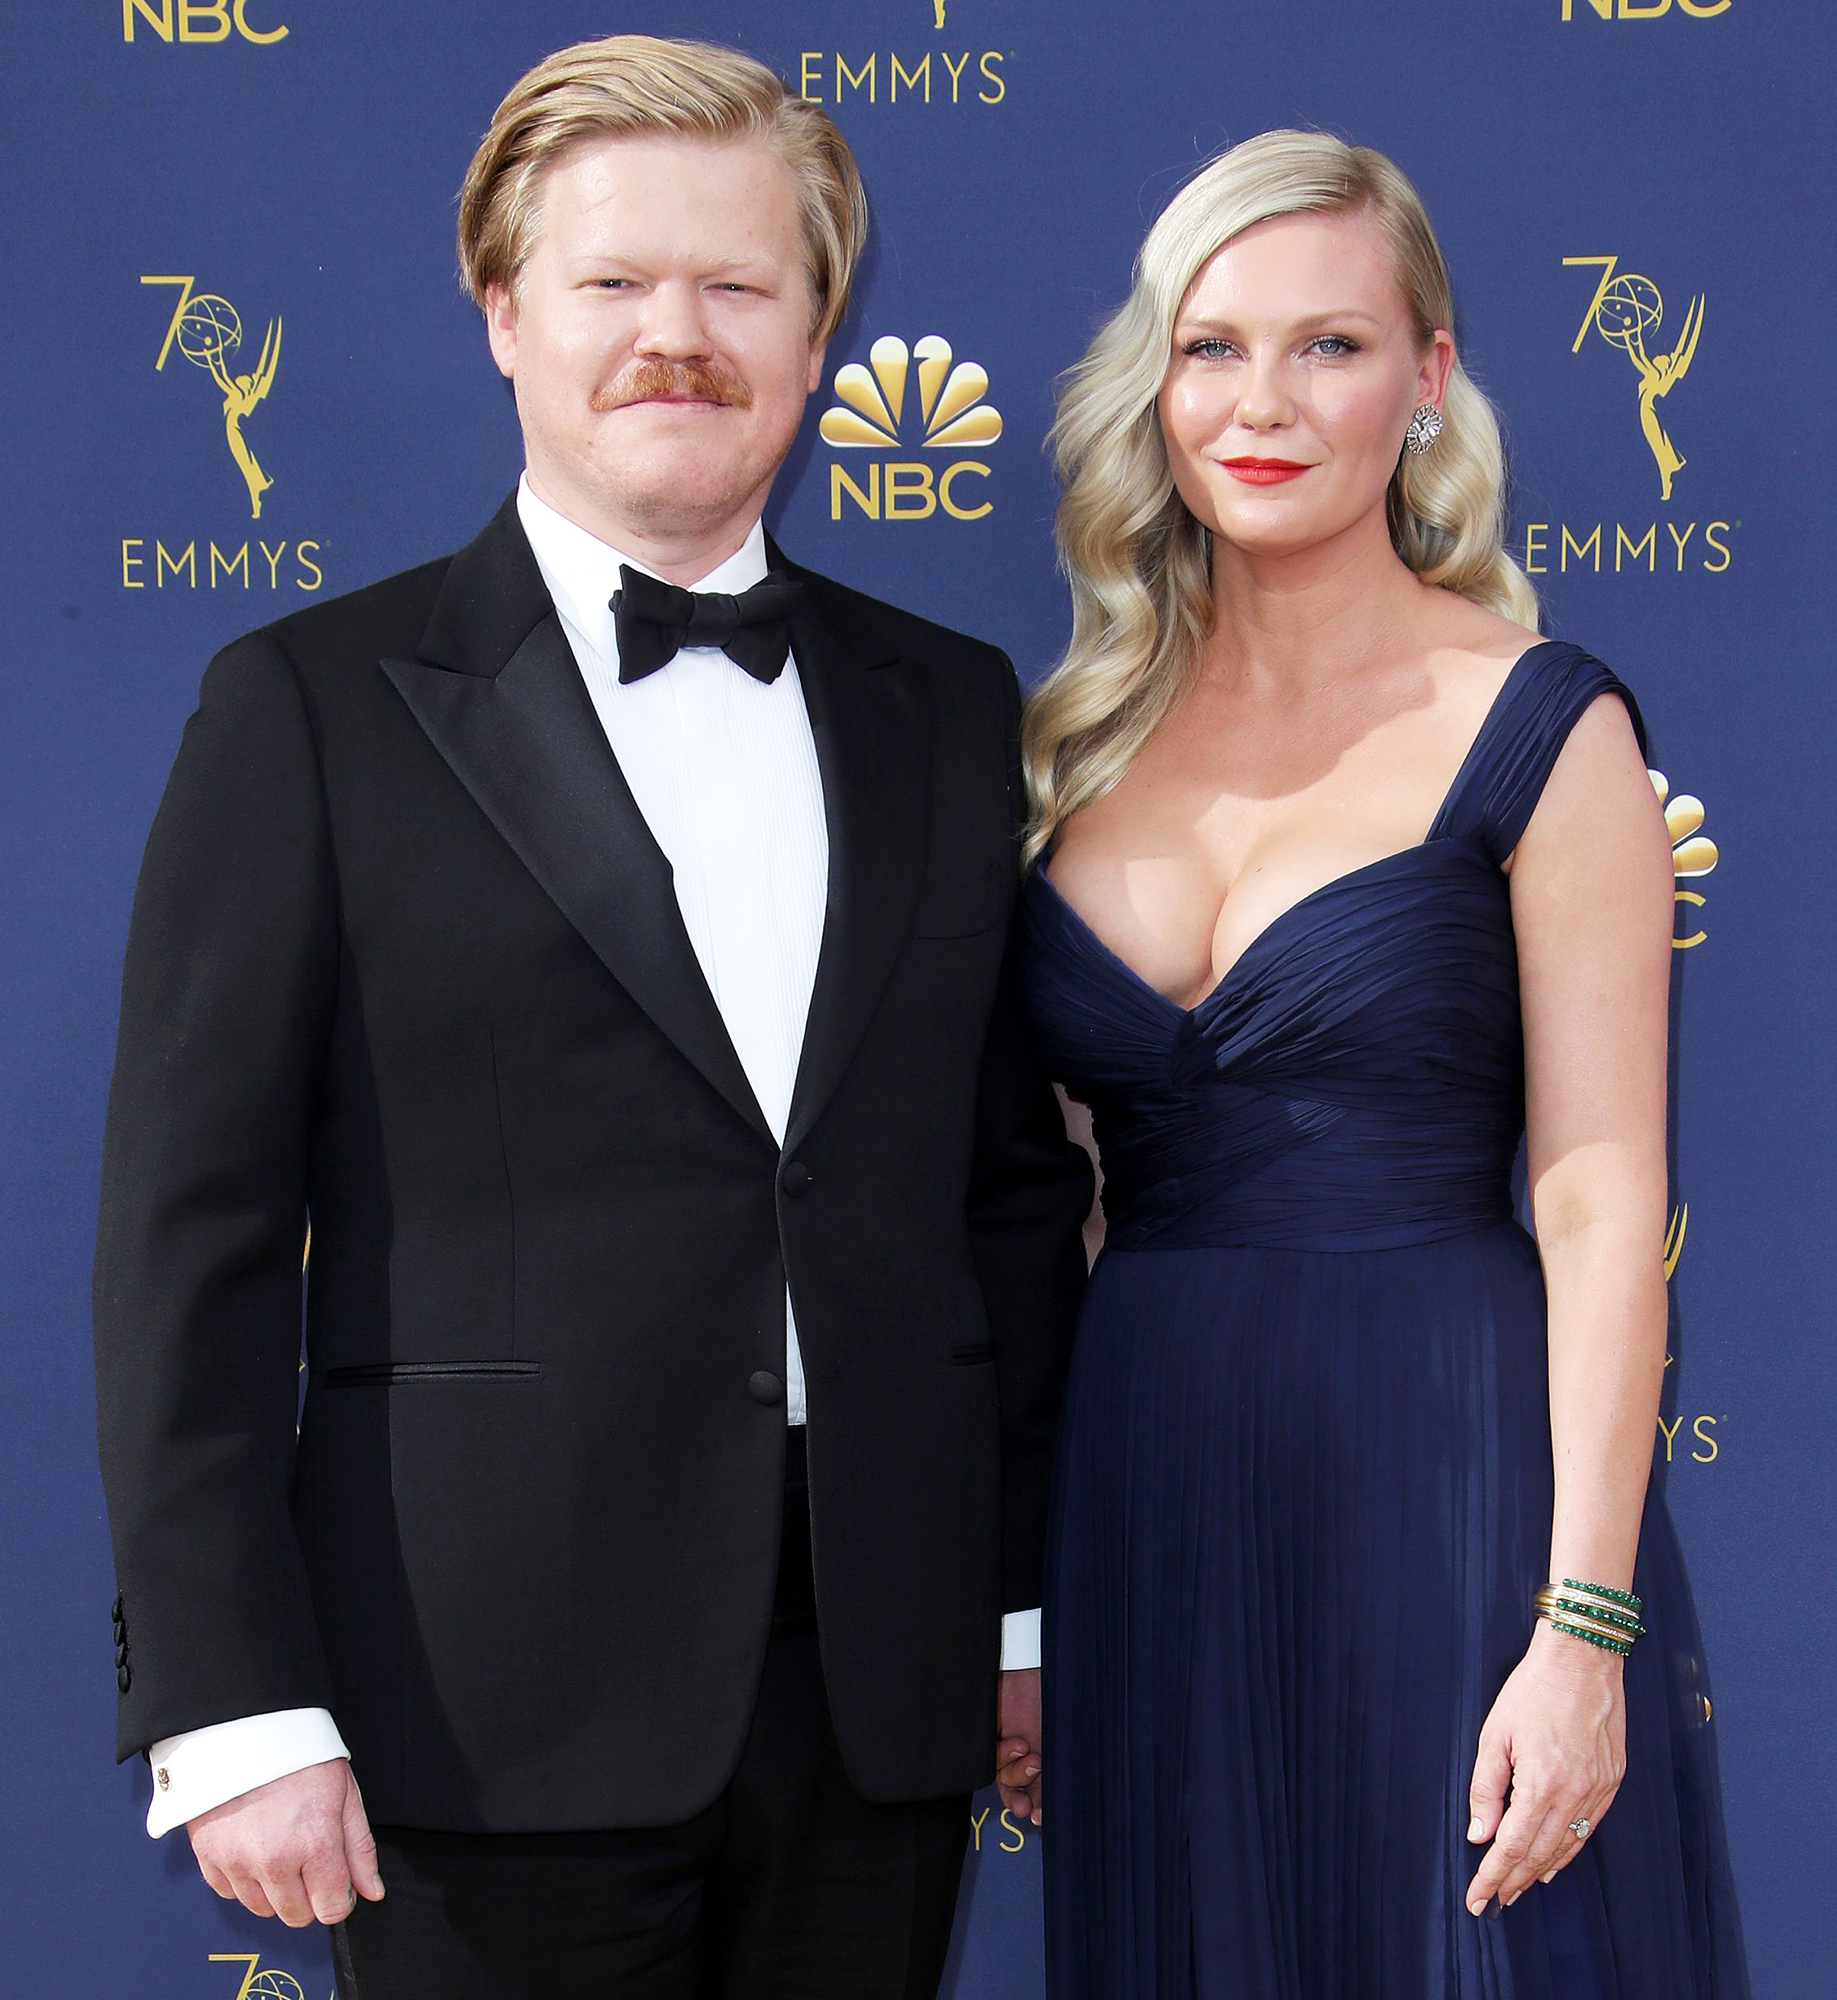 Jesse Plemons and Kirsten Dunst Attend the Emmy Awards in 2018 Admit Pregnancy With Jesse Plemons Was a Surprise in Porter Edit